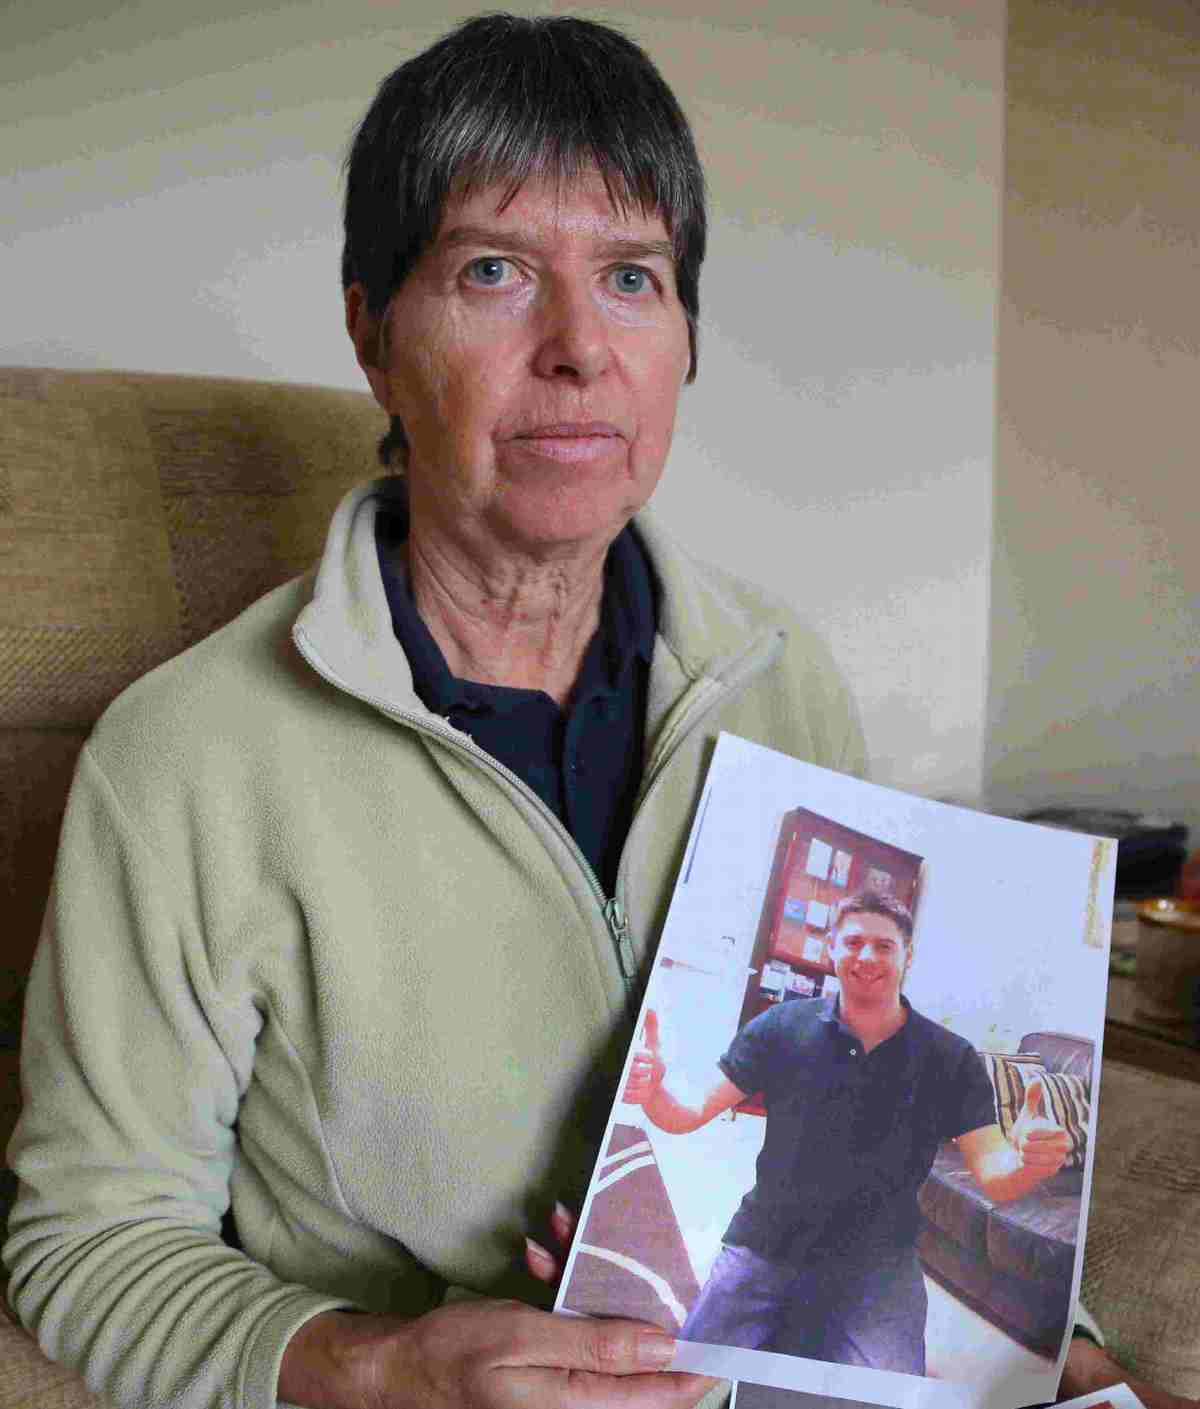 Distraught: missing man Aaron Fiveash's mother Maureen is appealing for information on his whereabouts